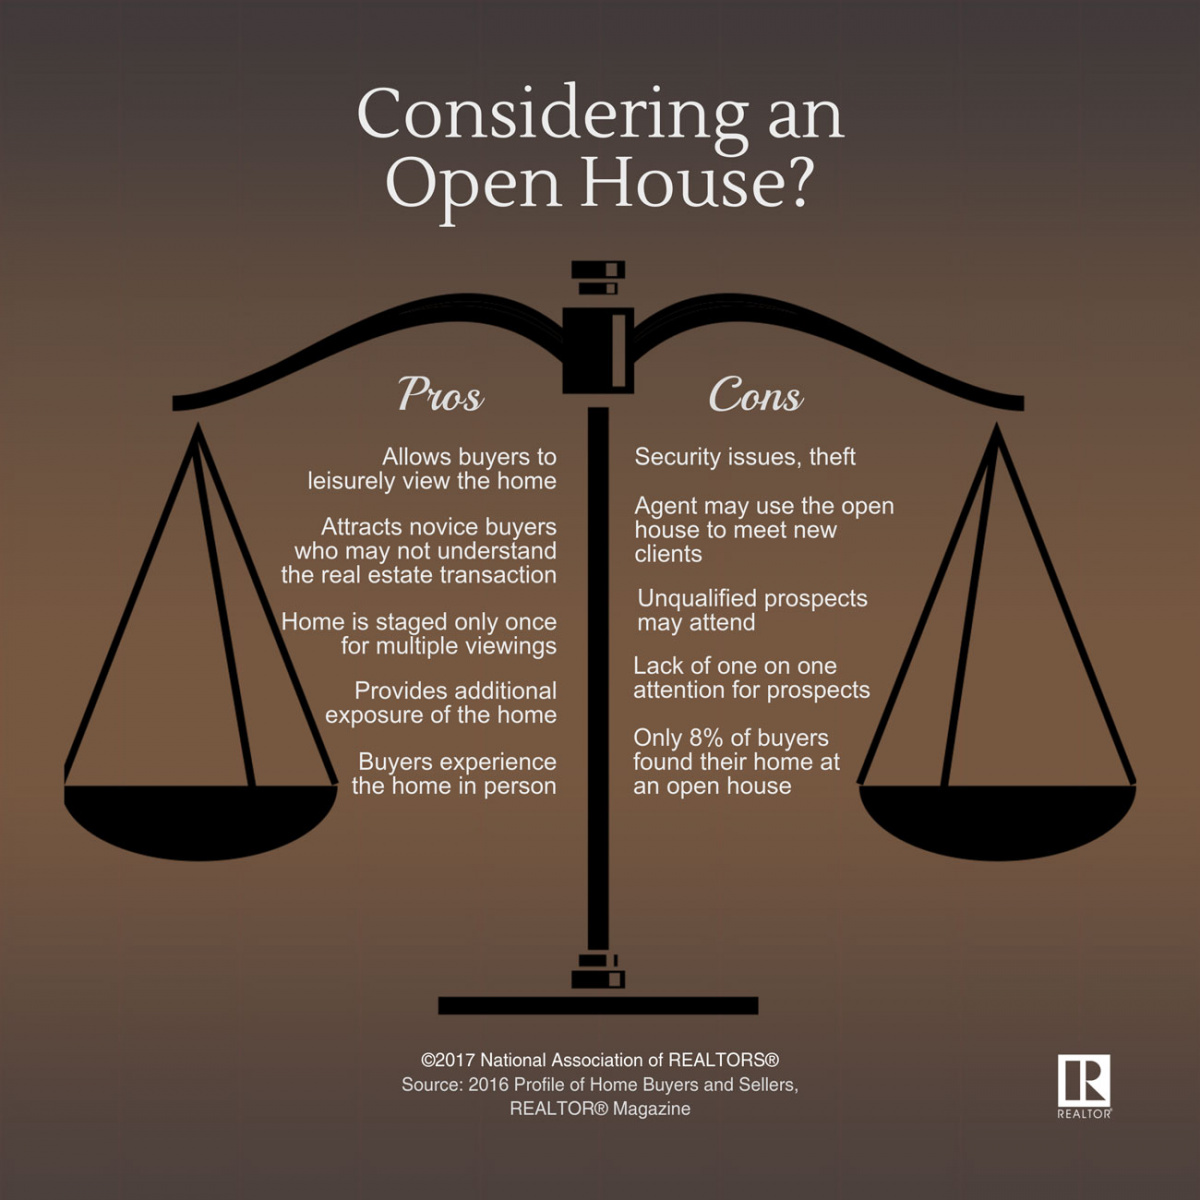 Considering an Open House?